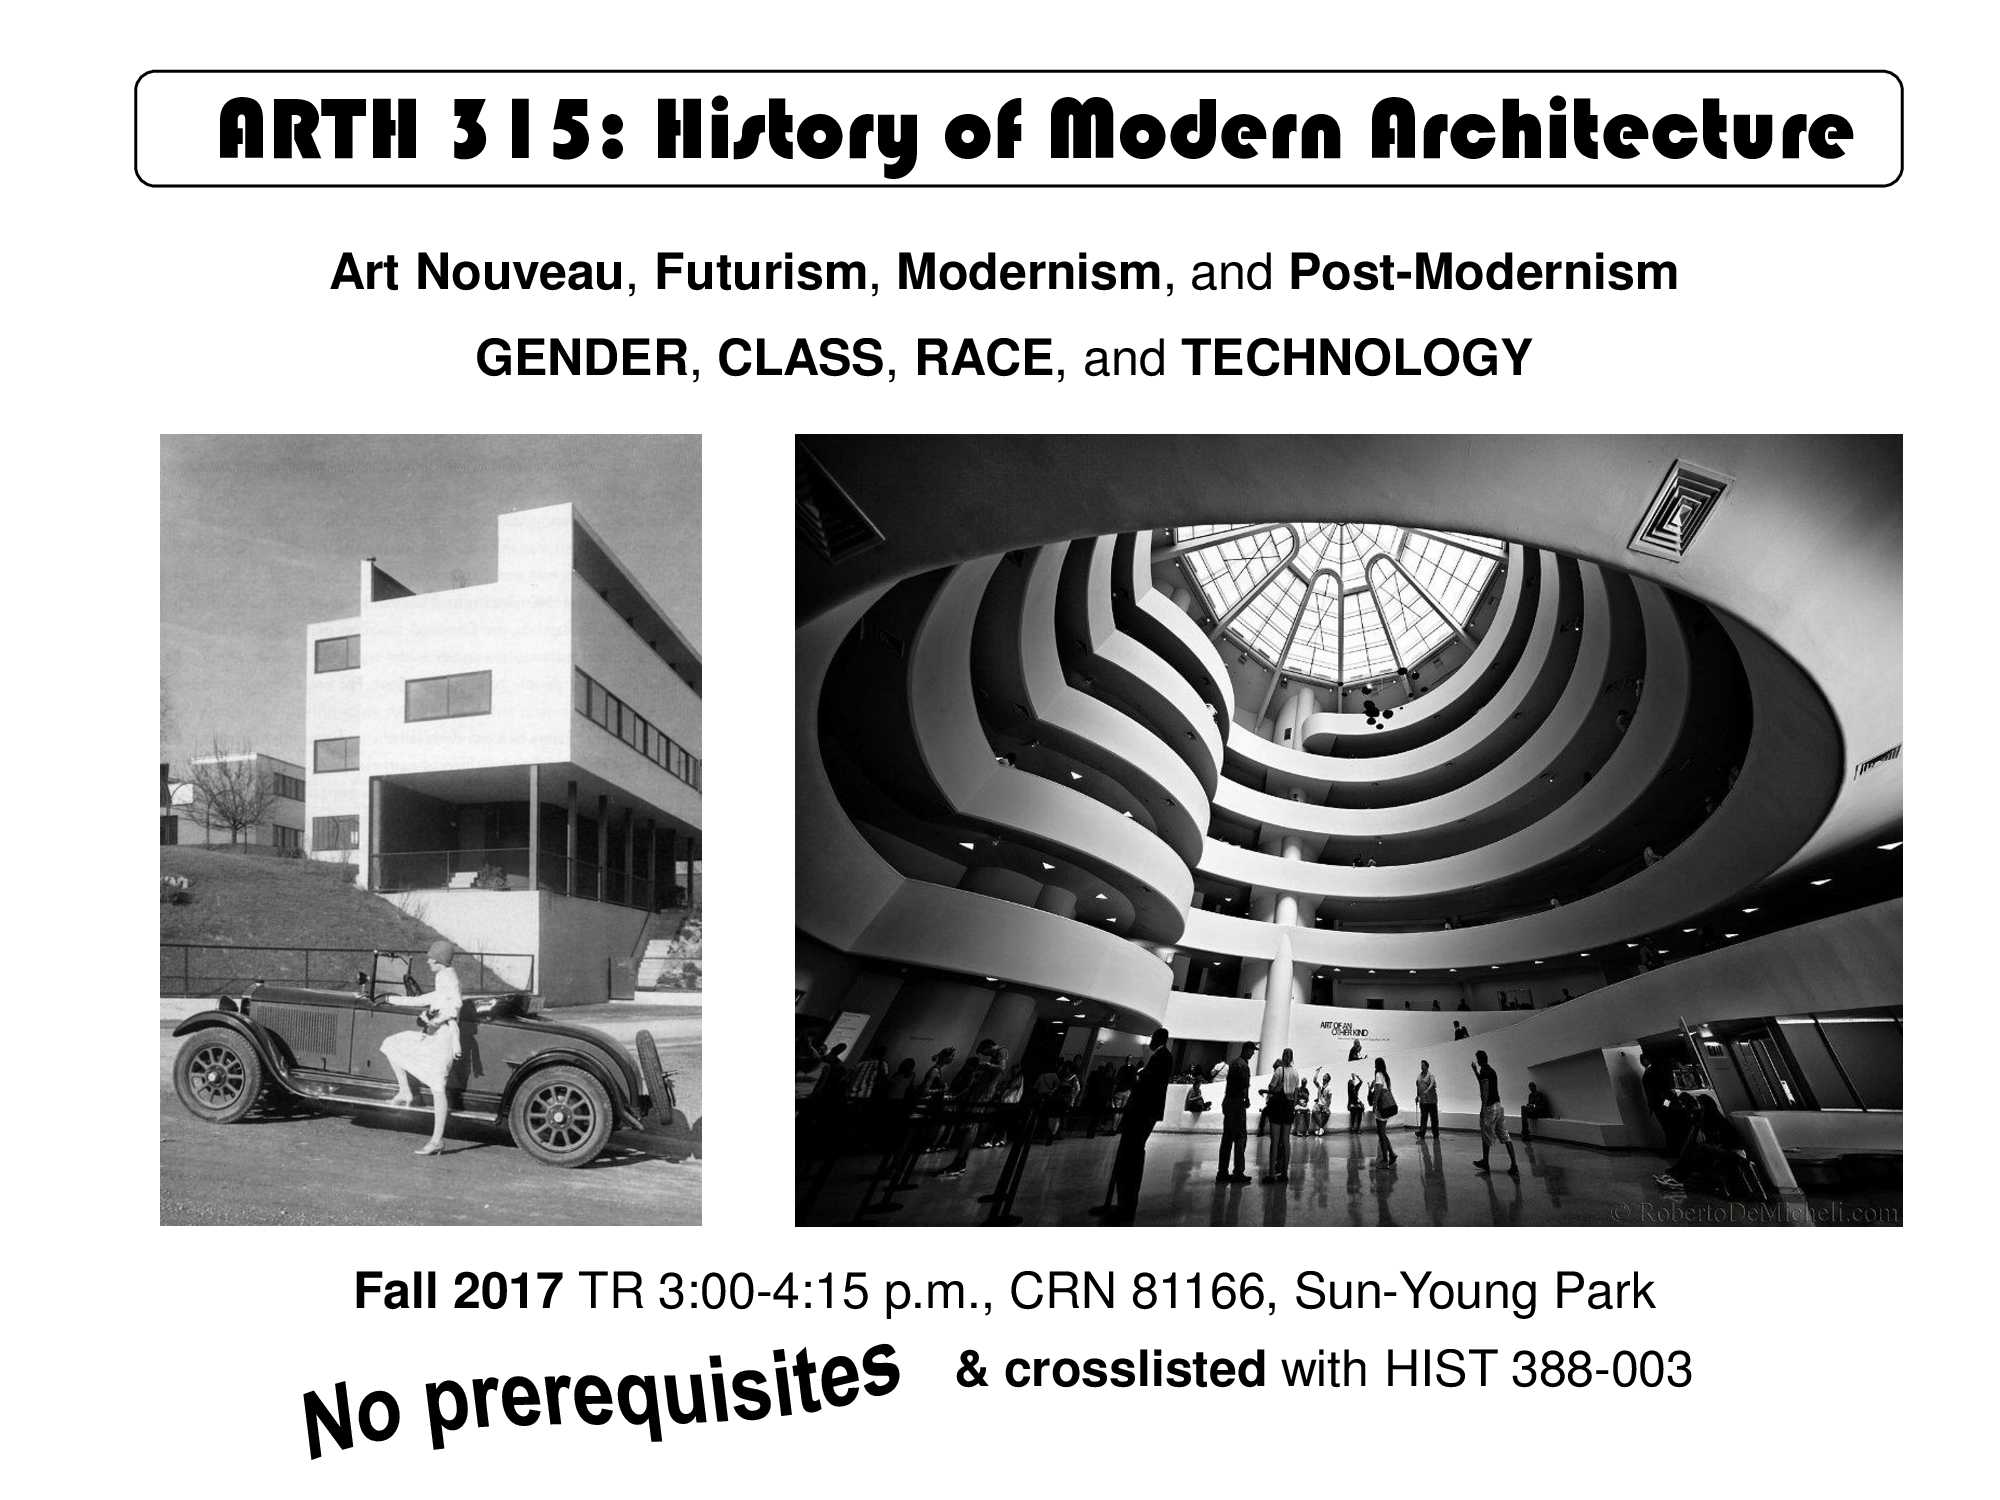 Information regarding ARTH 315 Modern Architecture is as follows Start date (when you would like your content to be posted) is June 07 2017 and End Date  (when you would like your content to be removed from the screens) is August 25 2017 and Name of Ad/Event is ARTH 315 Modern Architecture and File is Browse and Name is Carrie Grabo and Email is cgrabo1@gmu.edu and Group Name is History and Art History and File Name is History-of-Modern-Architecture-Flyer-Digital_comp.jpg and Panel for your ad to be displayed is Main and Affiliation is Mason Department and